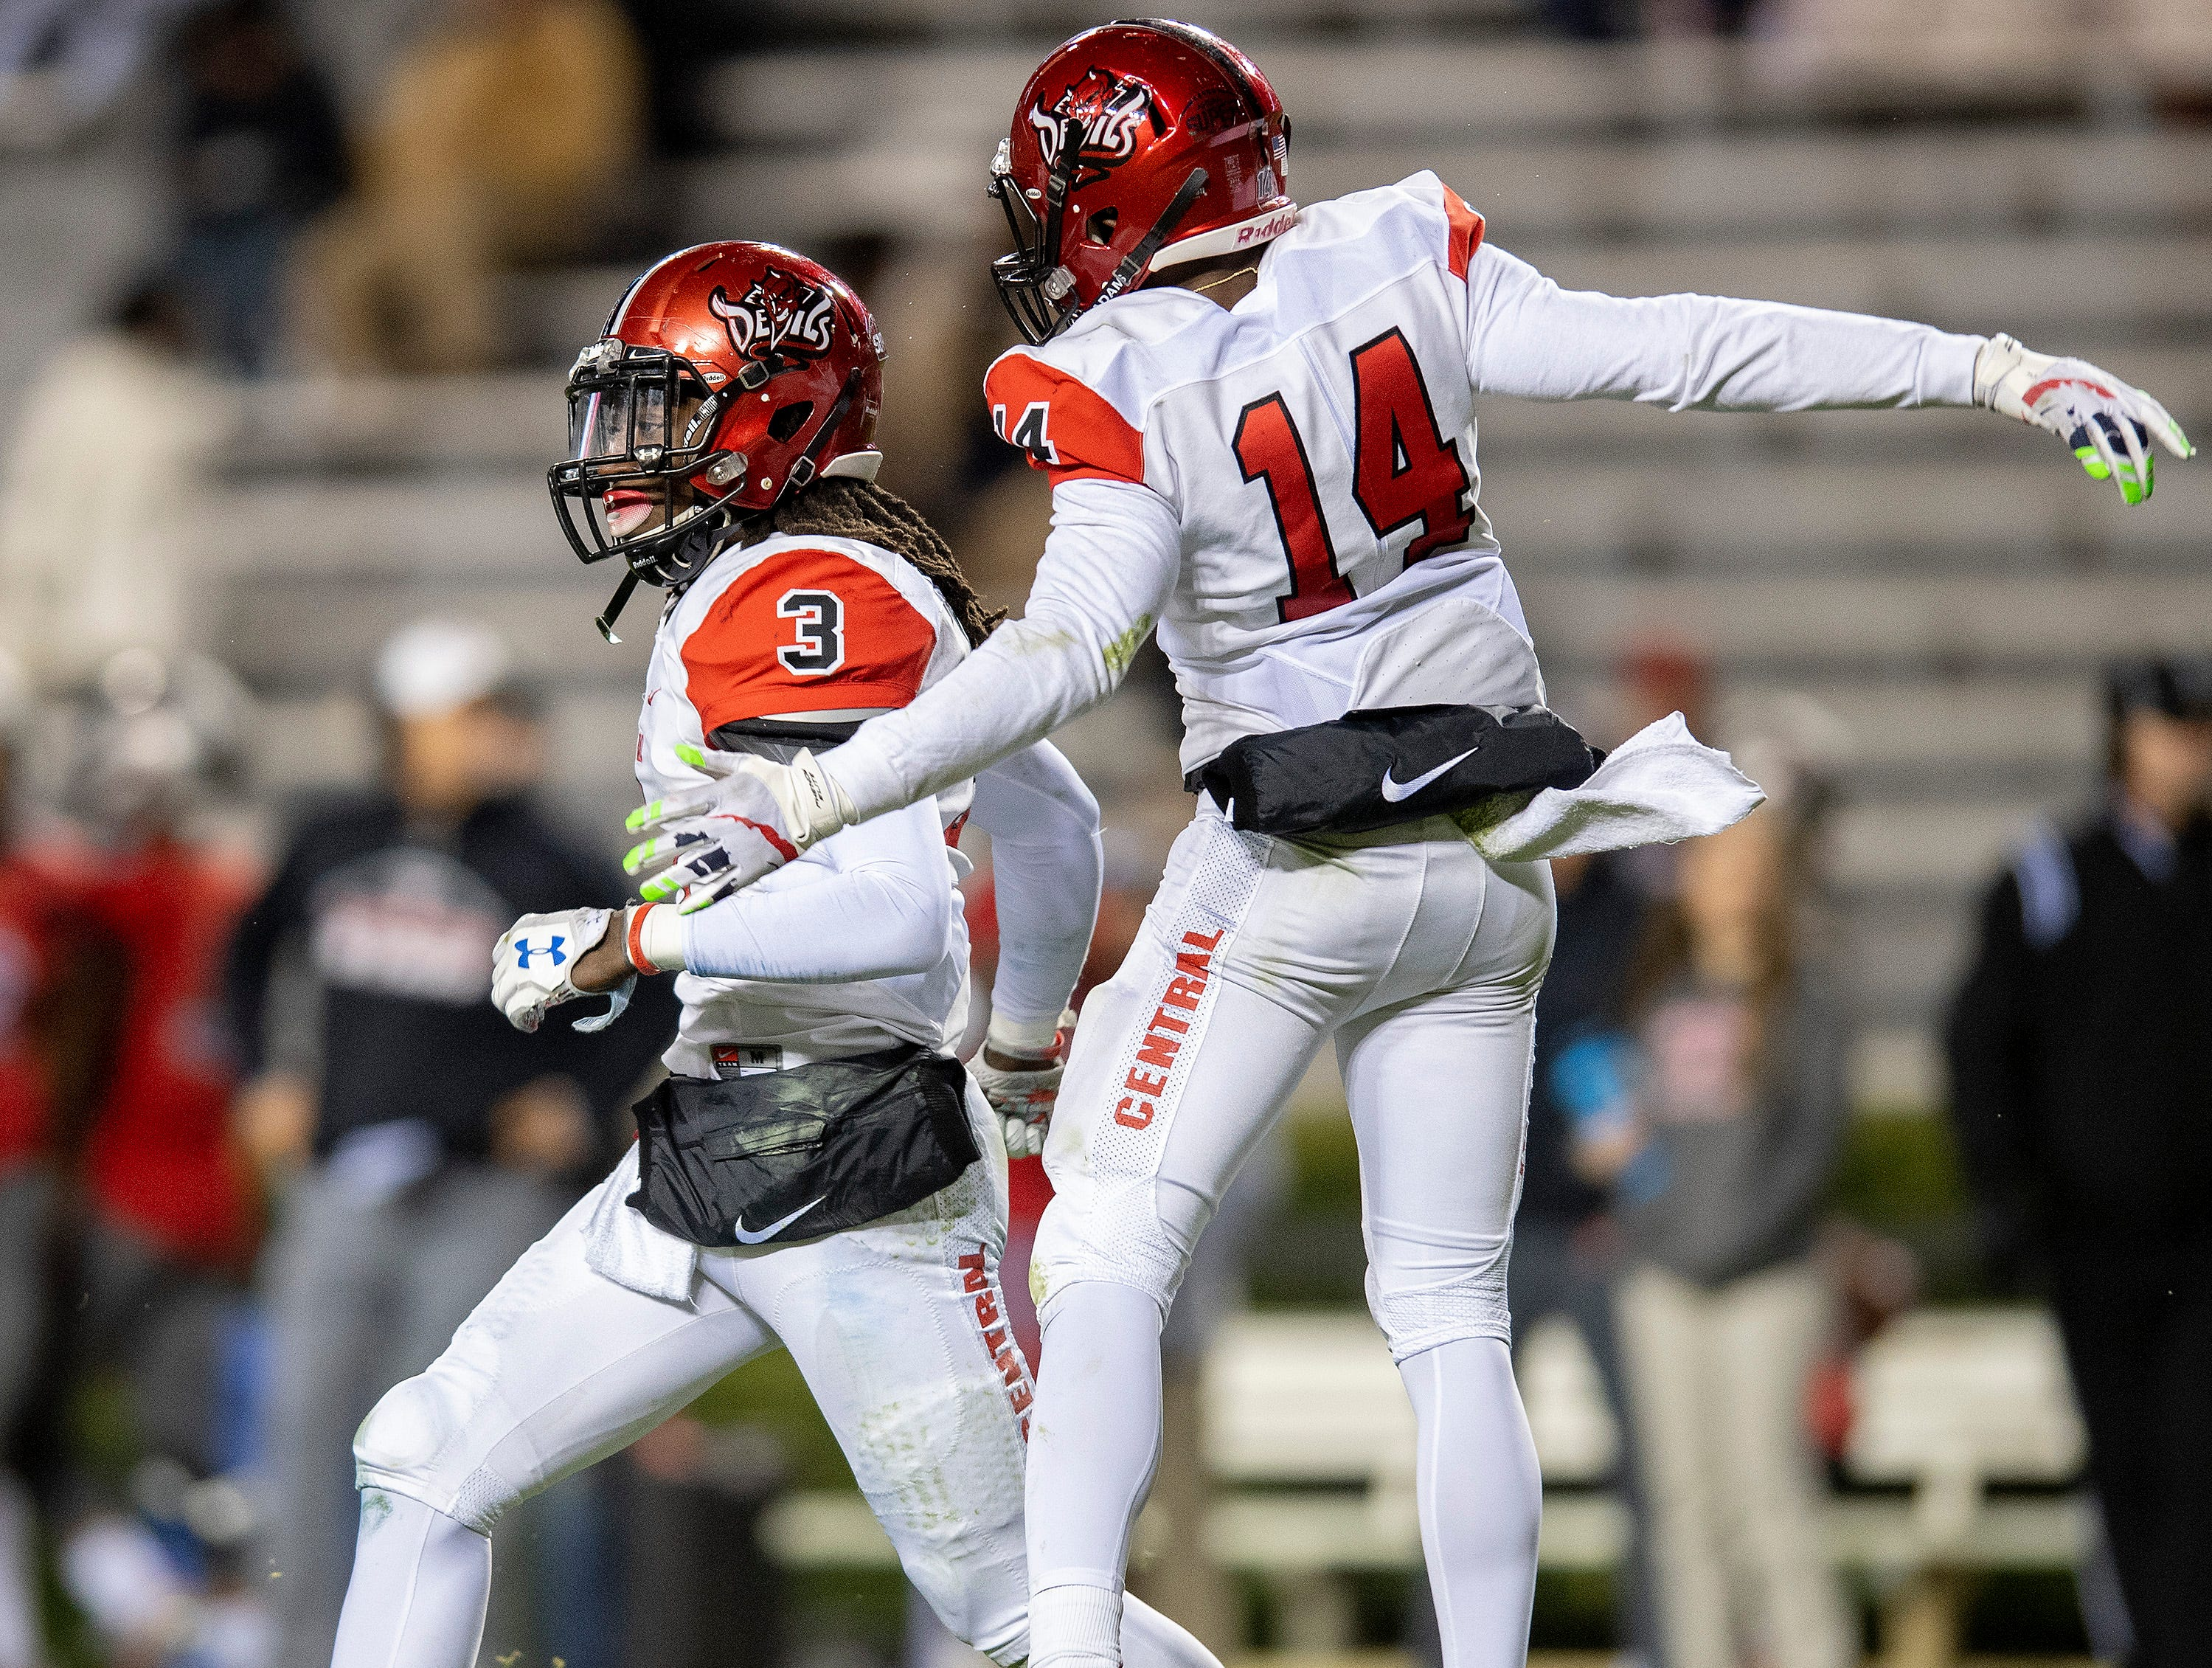 Central-Phenix City's Marquez Henry celebrates after returning an interception for a touchdown against Thompson during the AHSAA Class 7A State Championship Football Game at Jordan Hare Stadium in Auburn, Ala., on Wednesday evening December 5, 2018.